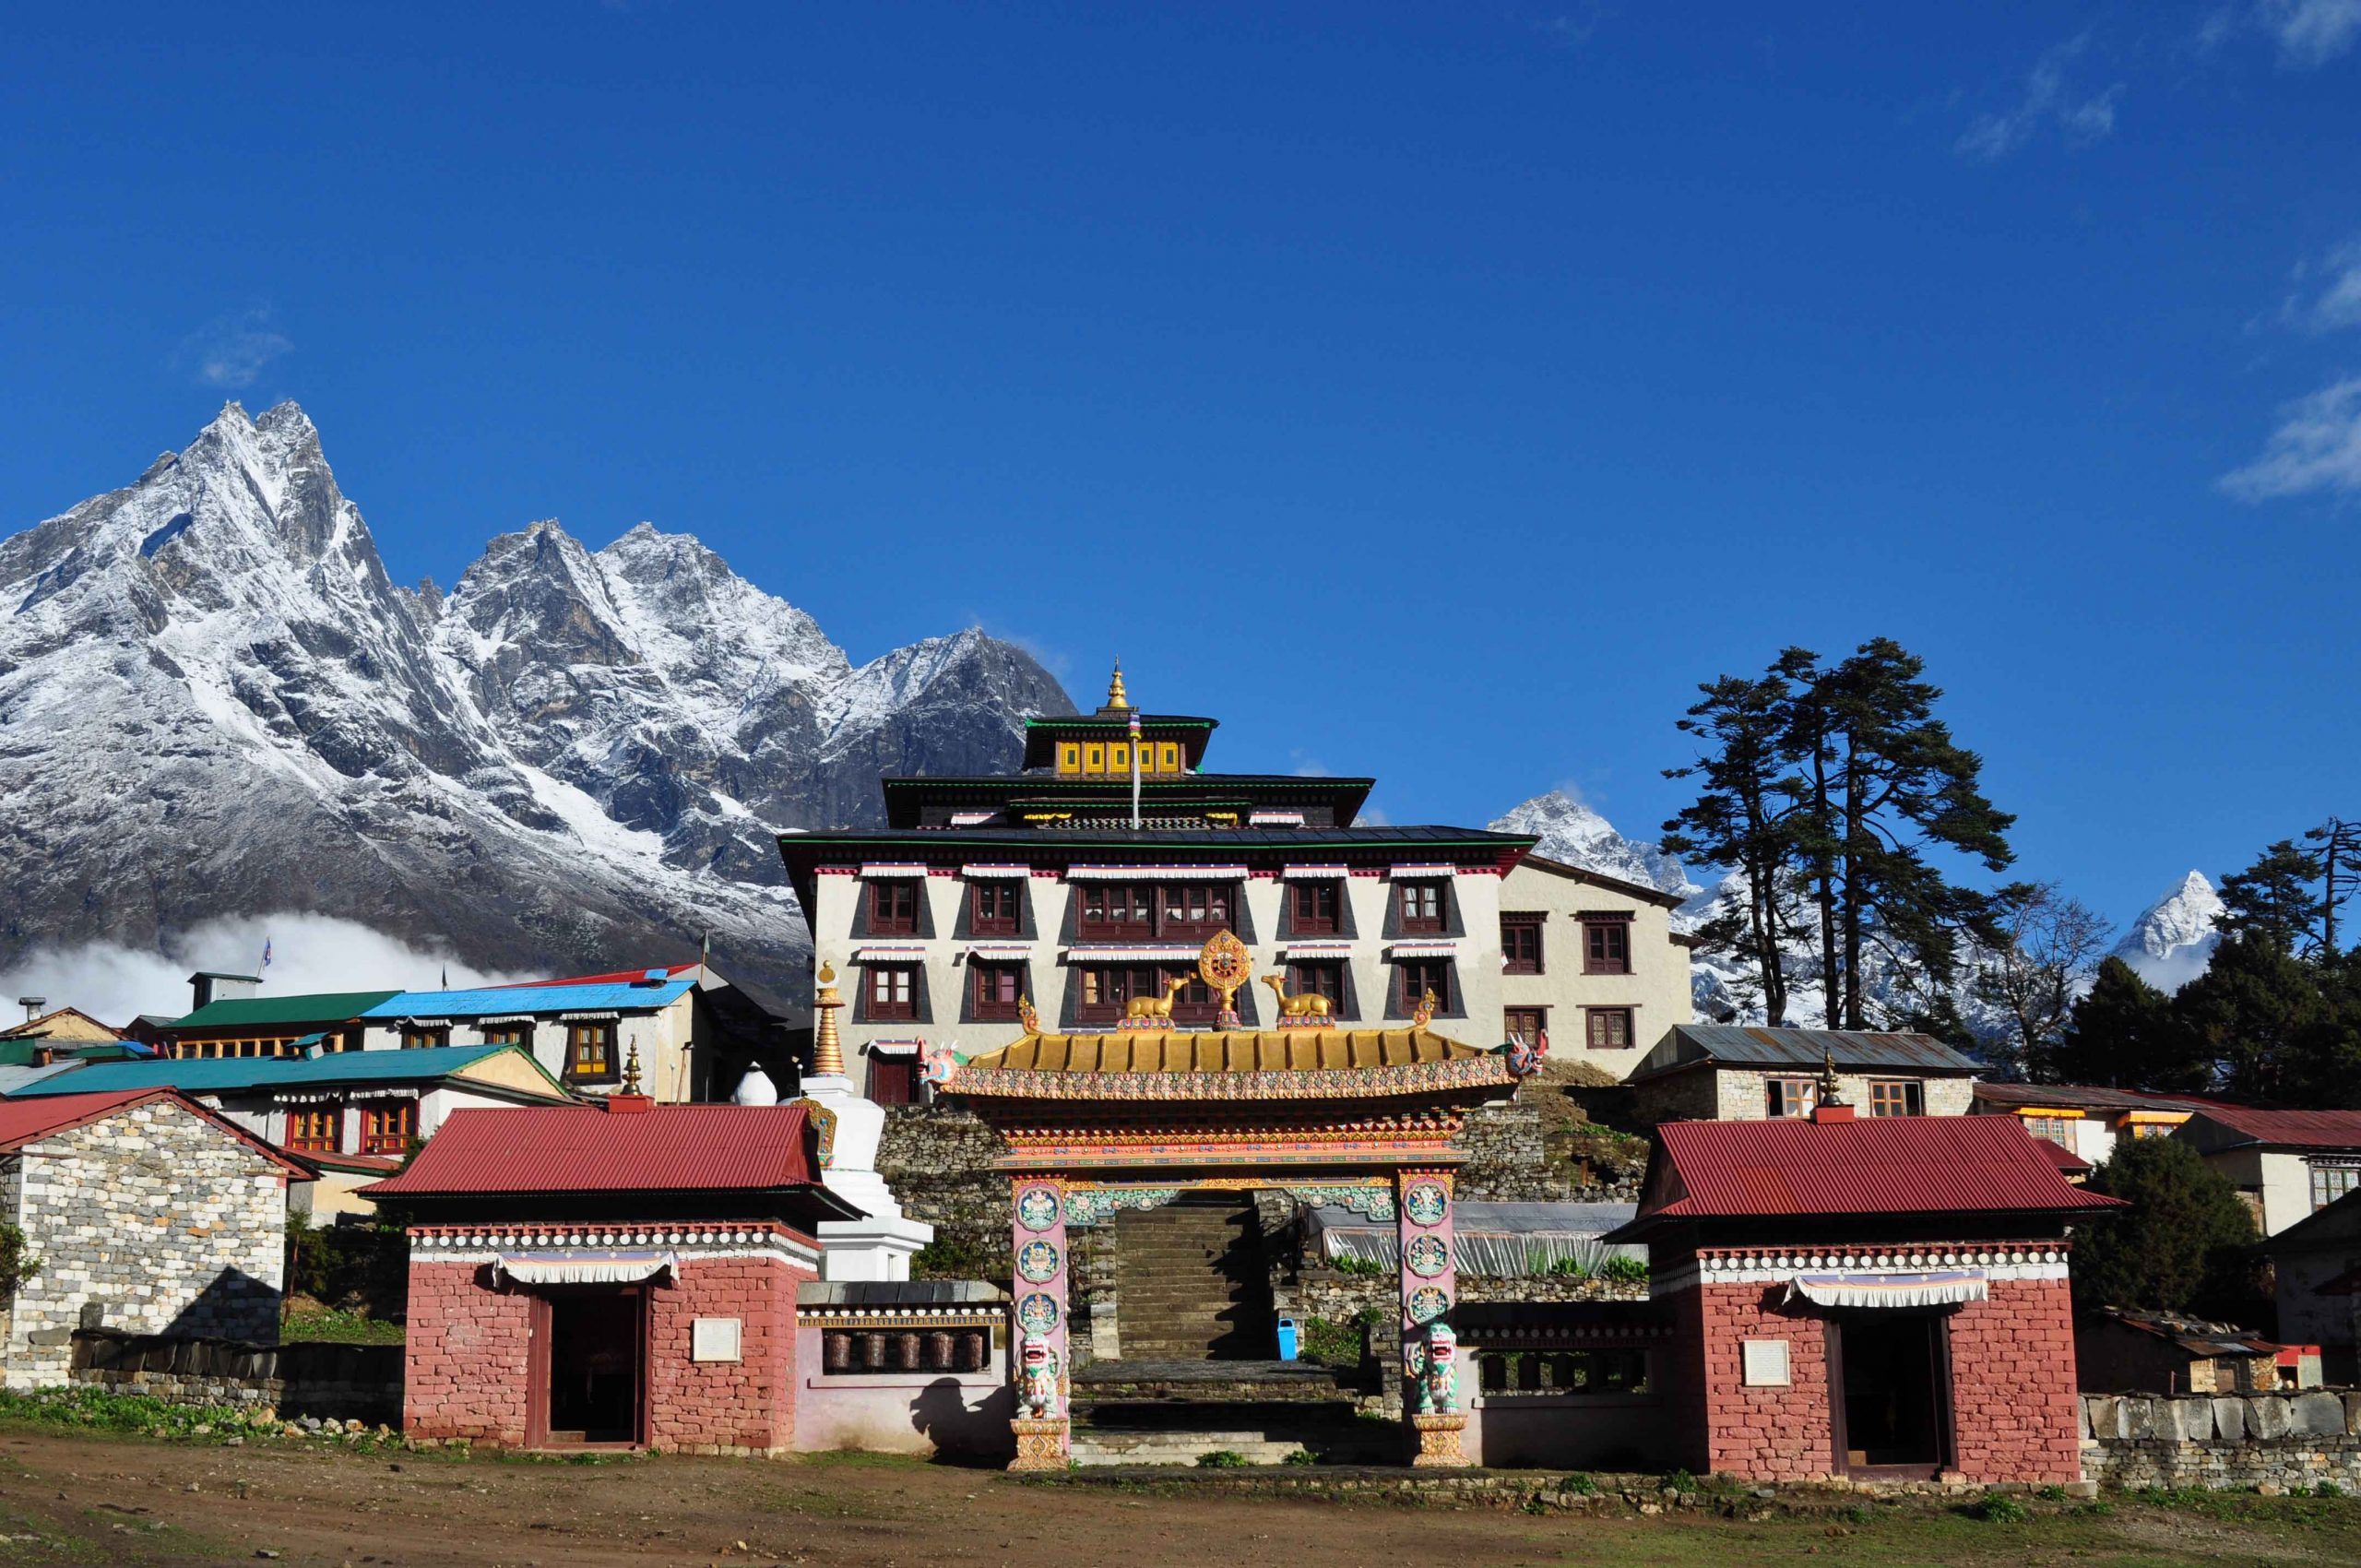 best of nepal, everest annapurna and chitwan tour, best of nepal tour, best tour in nepal, nepal tour itinerary, nepal tour cost